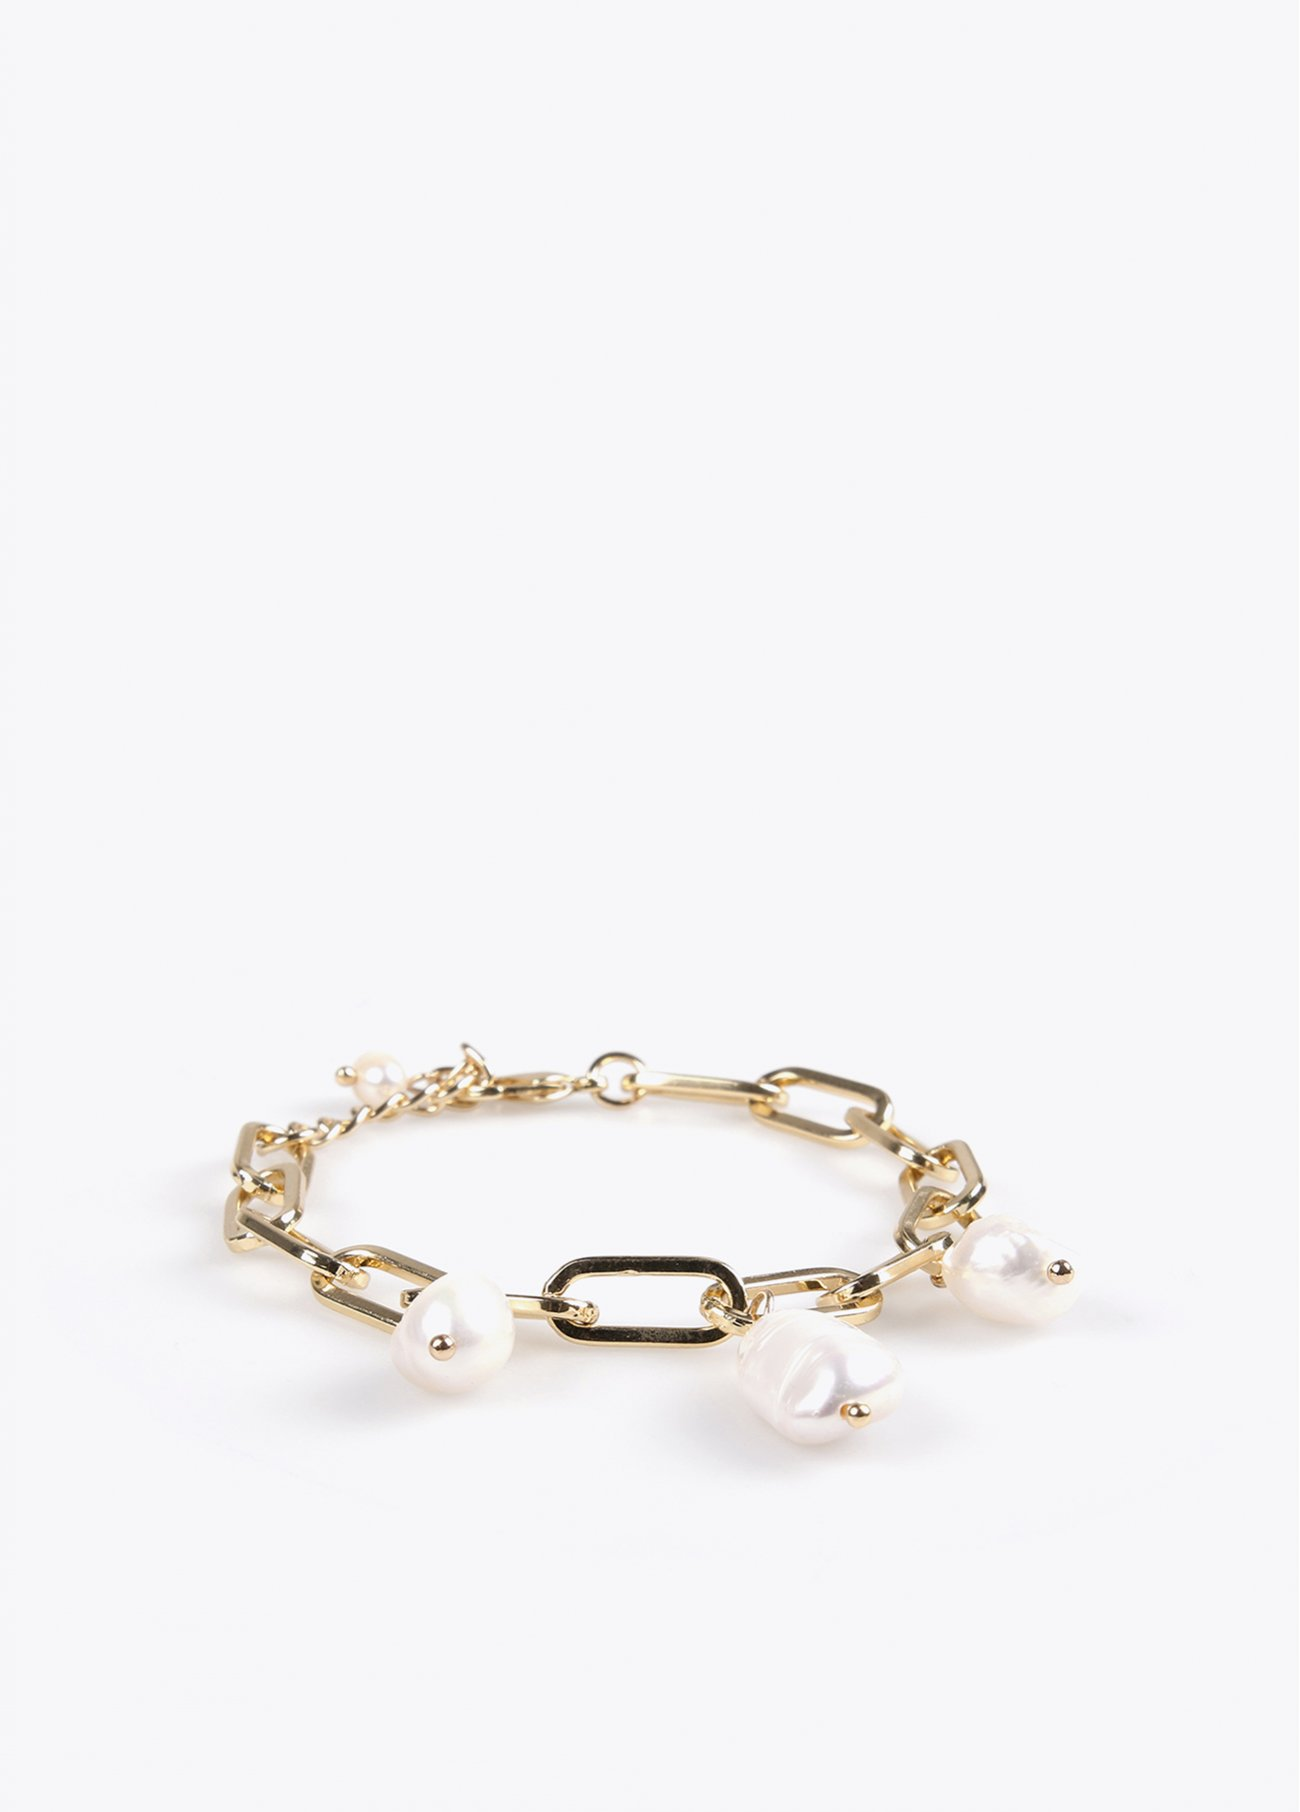 Golden bracelet with faux pearls